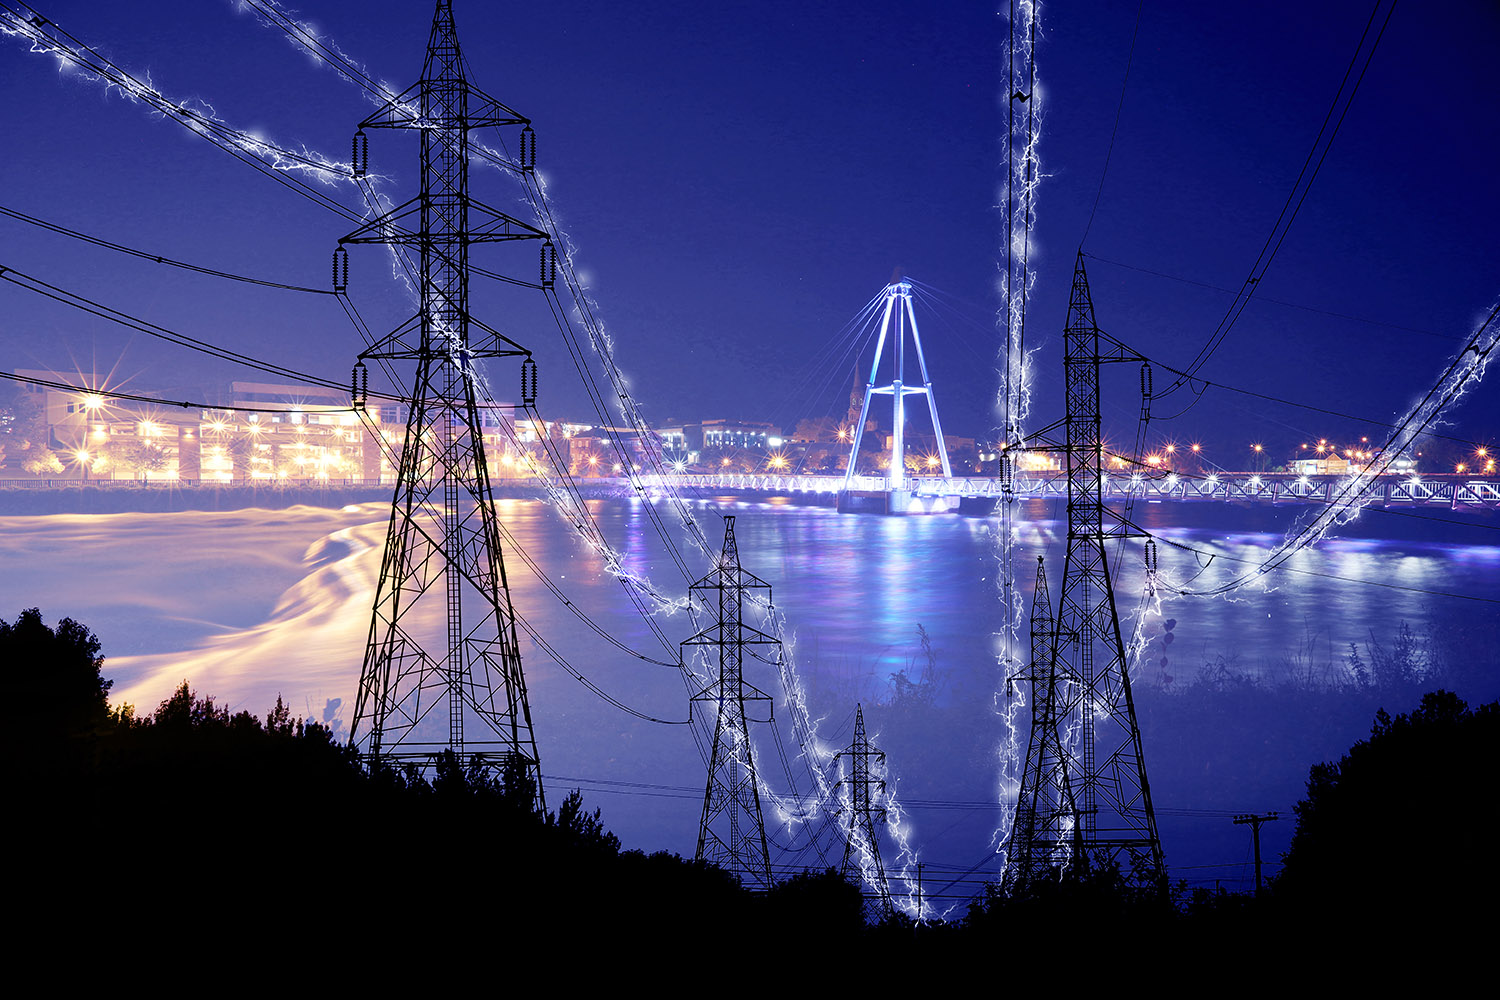 Small Town Electrification at Night in Blue - RF Stock Image